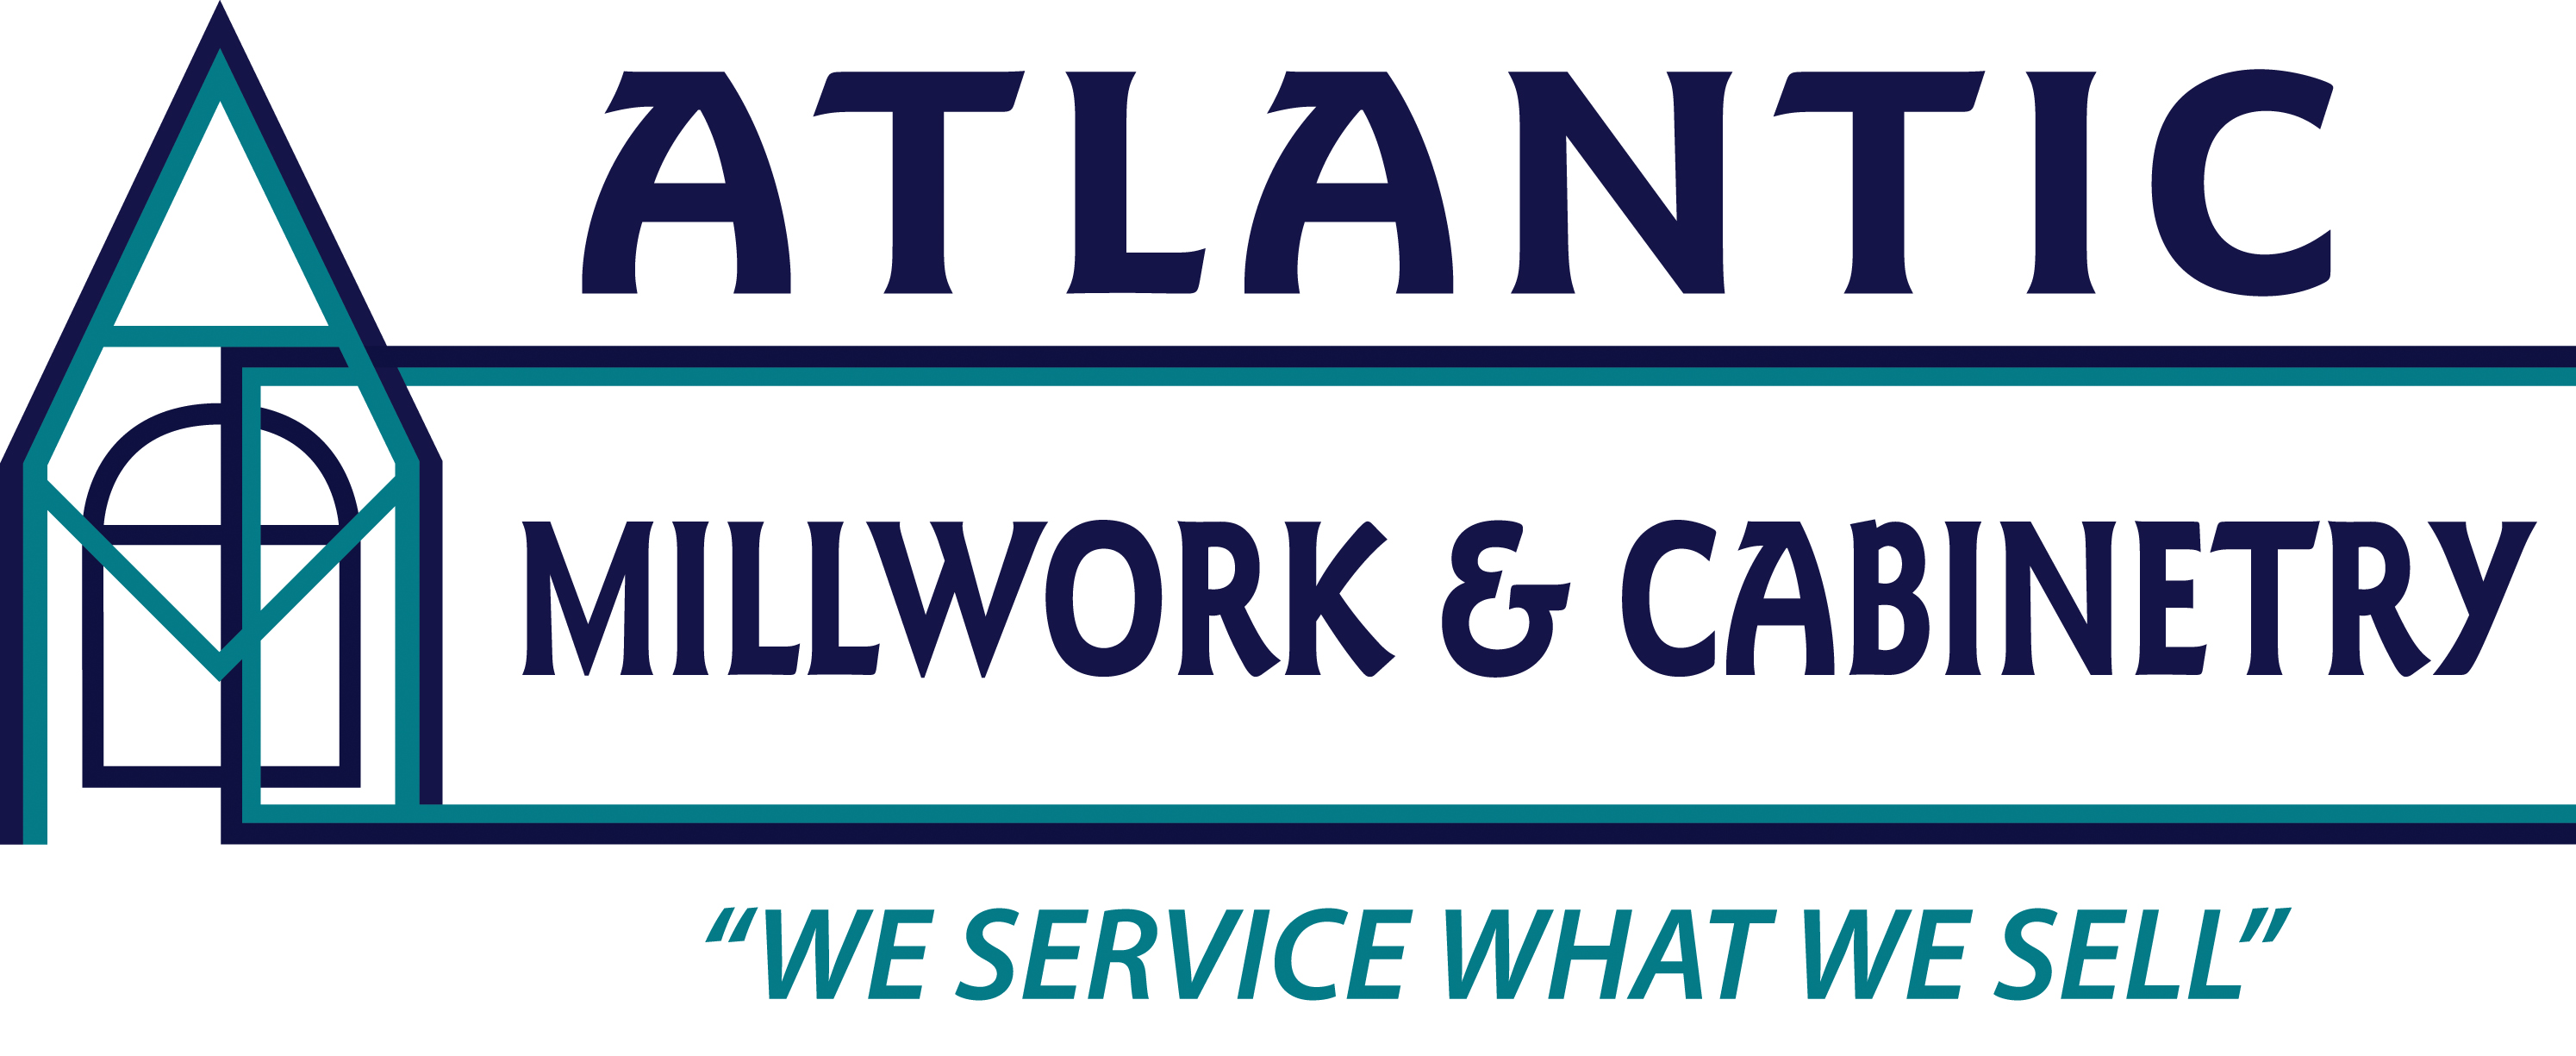 Atlantic Millwork & Cabinetry